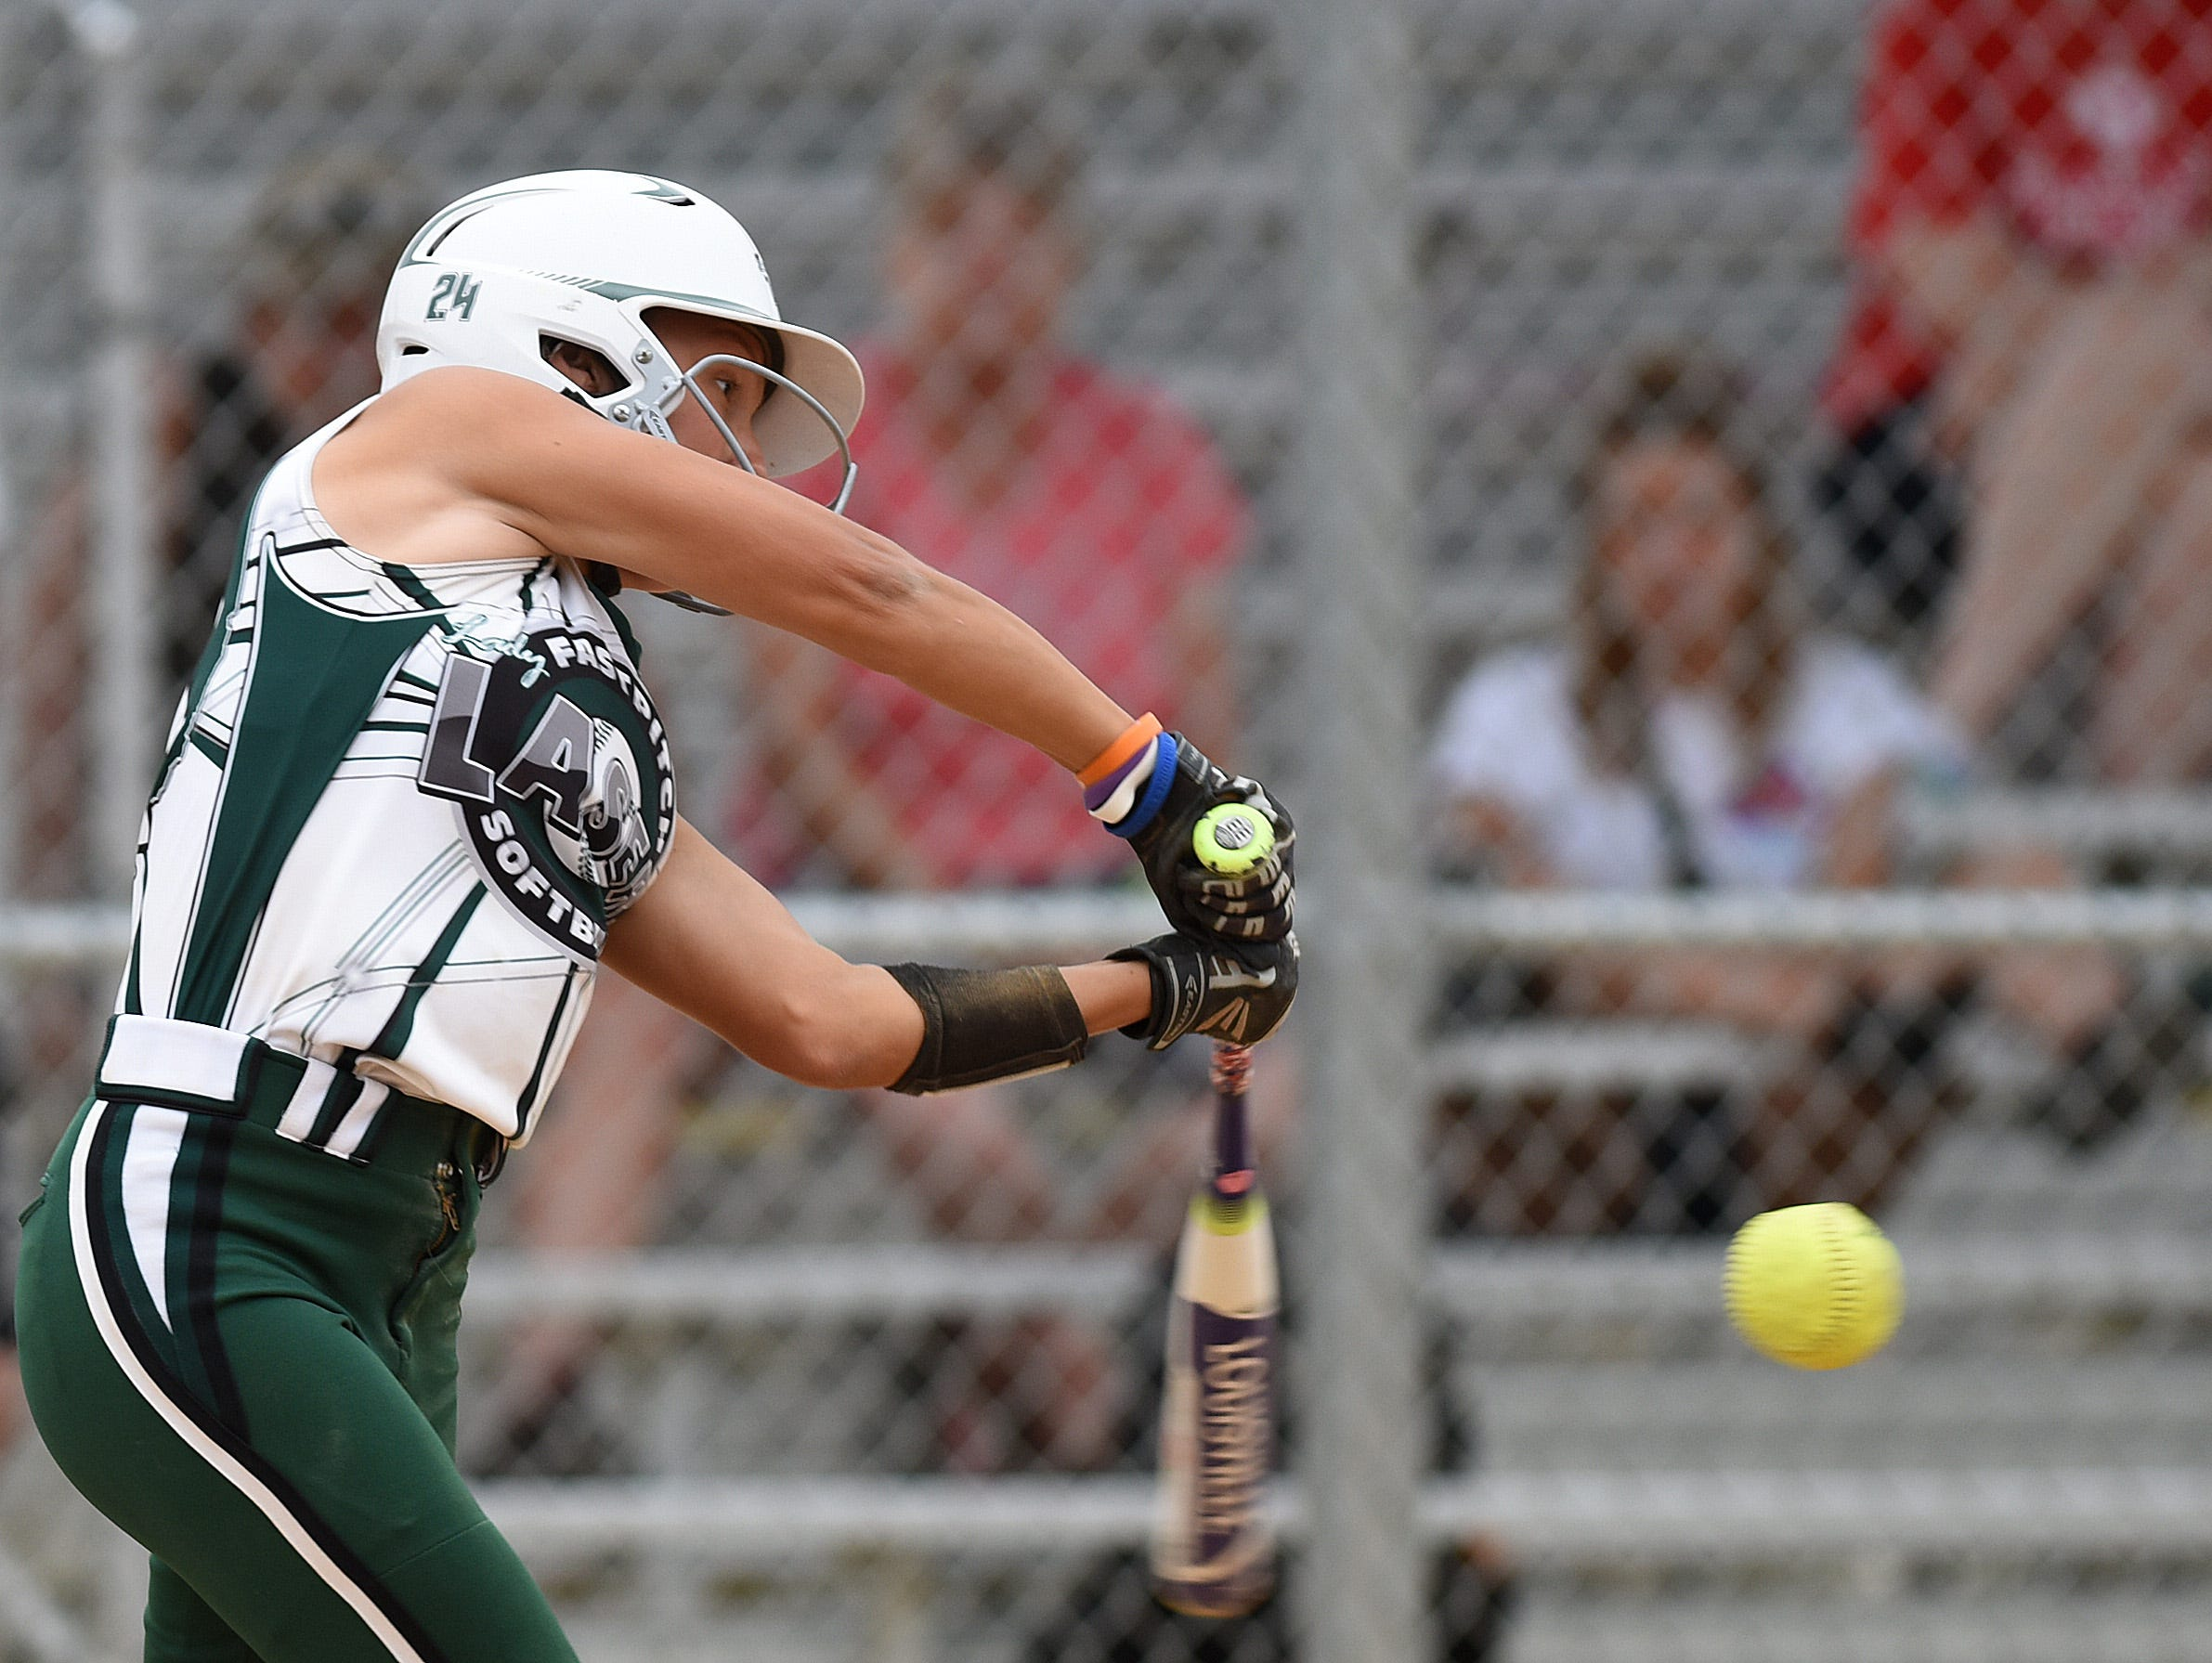 Ohio Lady Lasers Green's #24 Tegan Cortelletti bats against New Lenox Lighting during the ASA 14U national softball tournament at Sherman Park in Sioux Falls, S.D., Monday, Aug. 1, 2016.